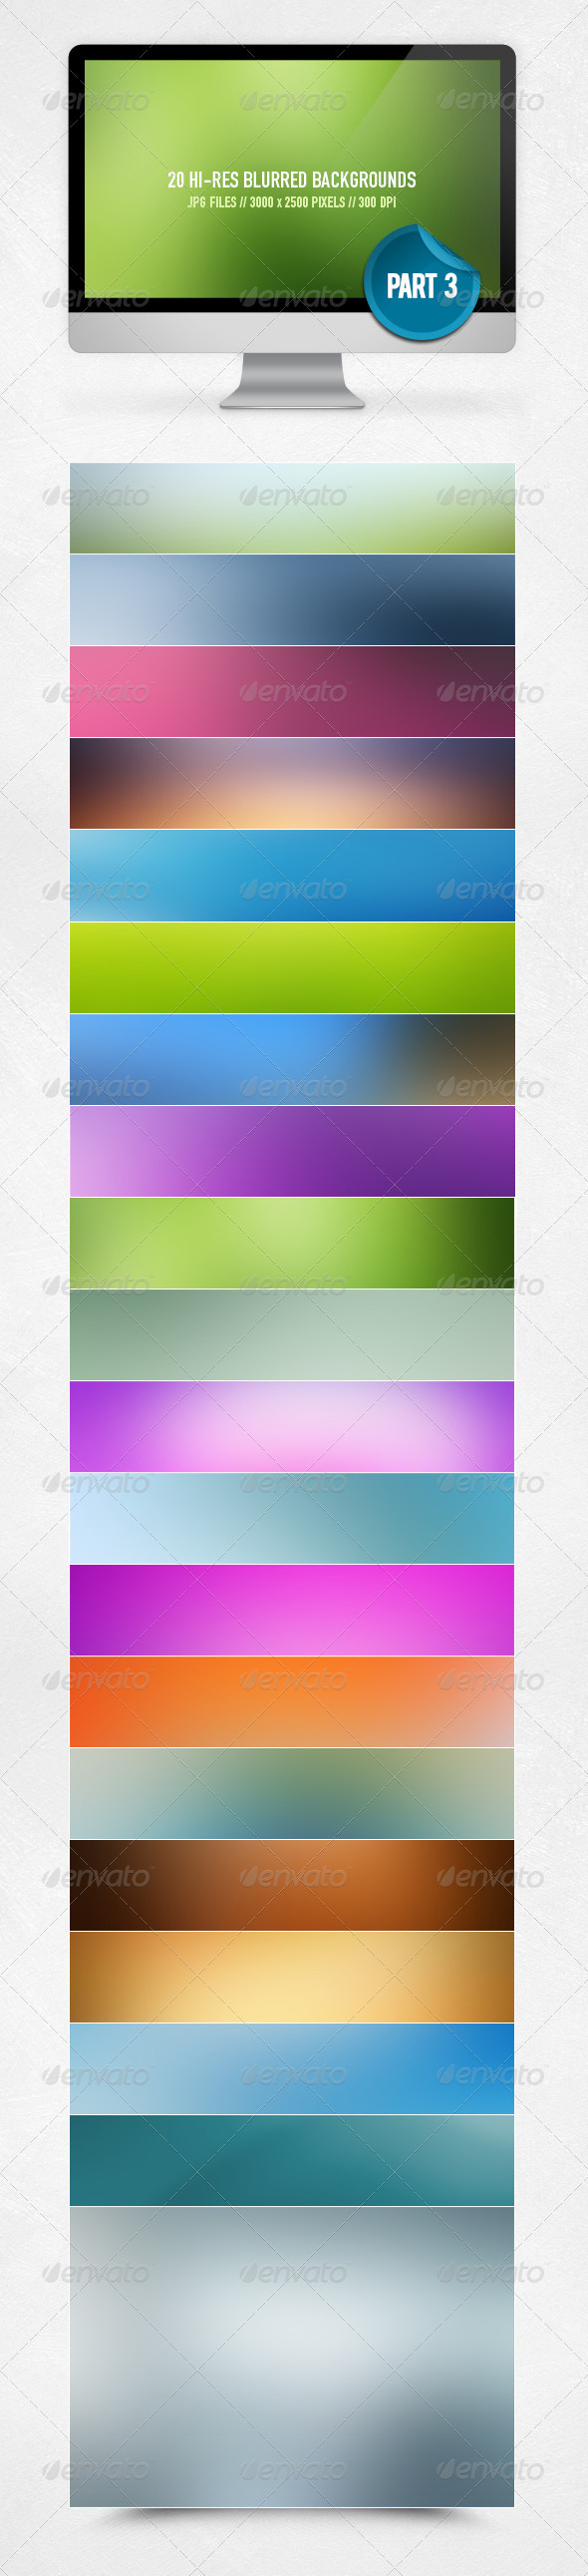 20 Blurred Backgrounds - Part 3 - Backgrounds Graphics